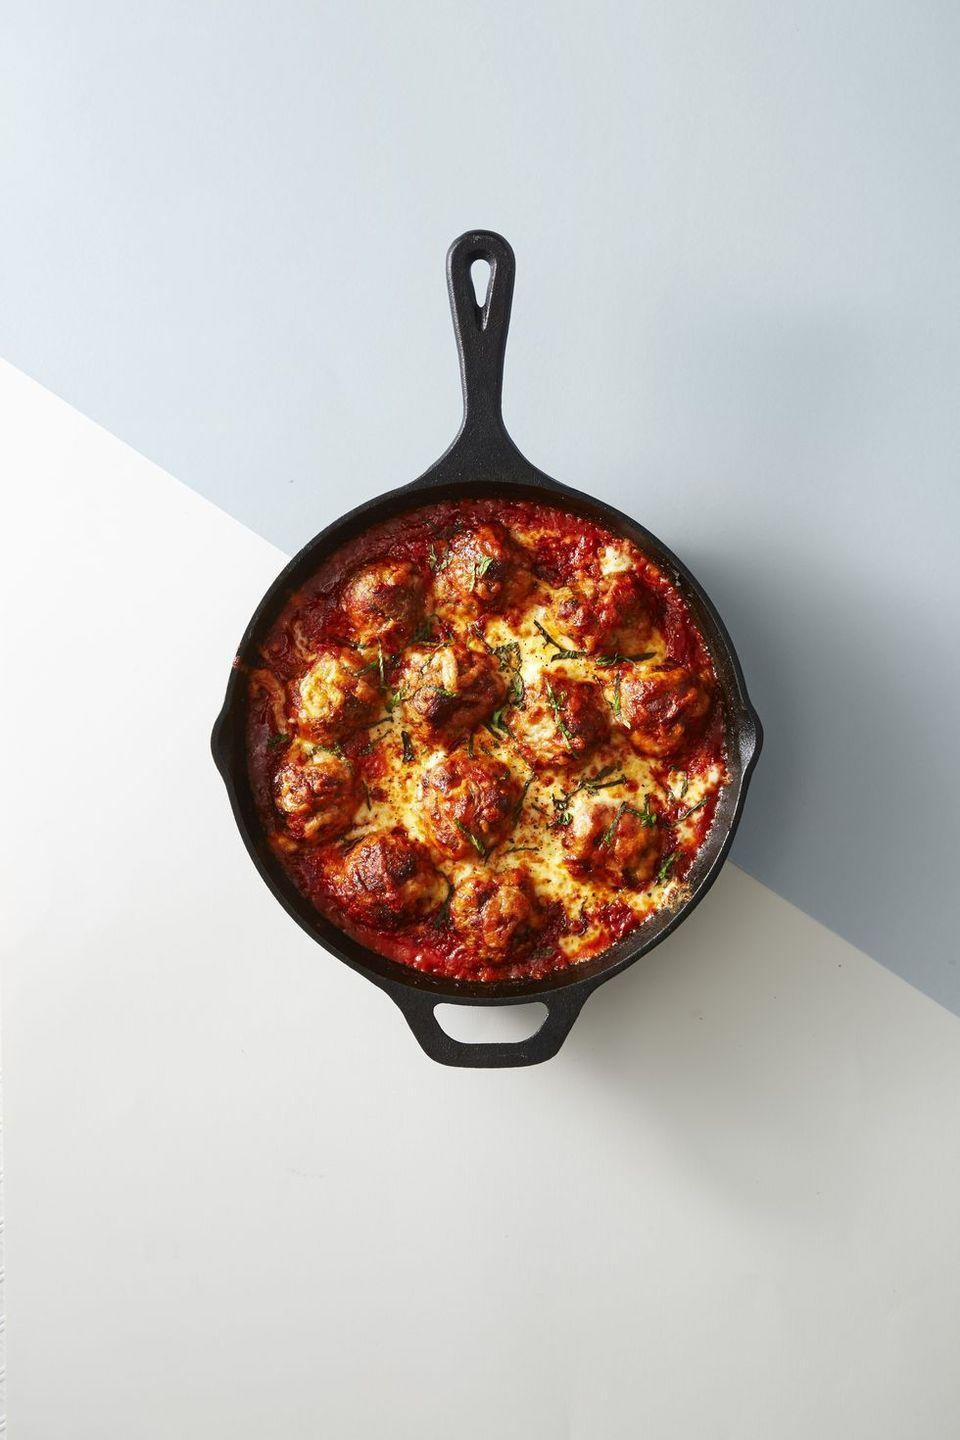 """<p><a href=""""https://www.goodhousekeeping.com/food-recipes/easy/g4215/meatball-recipes/"""" rel=""""nofollow noopener"""" target=""""_blank"""" data-ylk=""""slk:Juicy meatballs"""" class=""""link rapid-noclick-resp"""">Juicy meatballs</a>, covered in gooey mozzarella cheese sounds like the perfect dish to share with the family tonight.</p><p><em><a href=""""https://www.goodhousekeeping.com/food-recipes/a42821/doubly-cheesy-meatball-bake-recipe/"""" rel=""""nofollow noopener"""" target=""""_blank"""" data-ylk=""""slk:Get the recipe for Doubly Cheesy Meatball Bake »"""" class=""""link rapid-noclick-resp"""">Get the recipe for Doubly Cheesy Meatball Bake »</a></em></p>"""